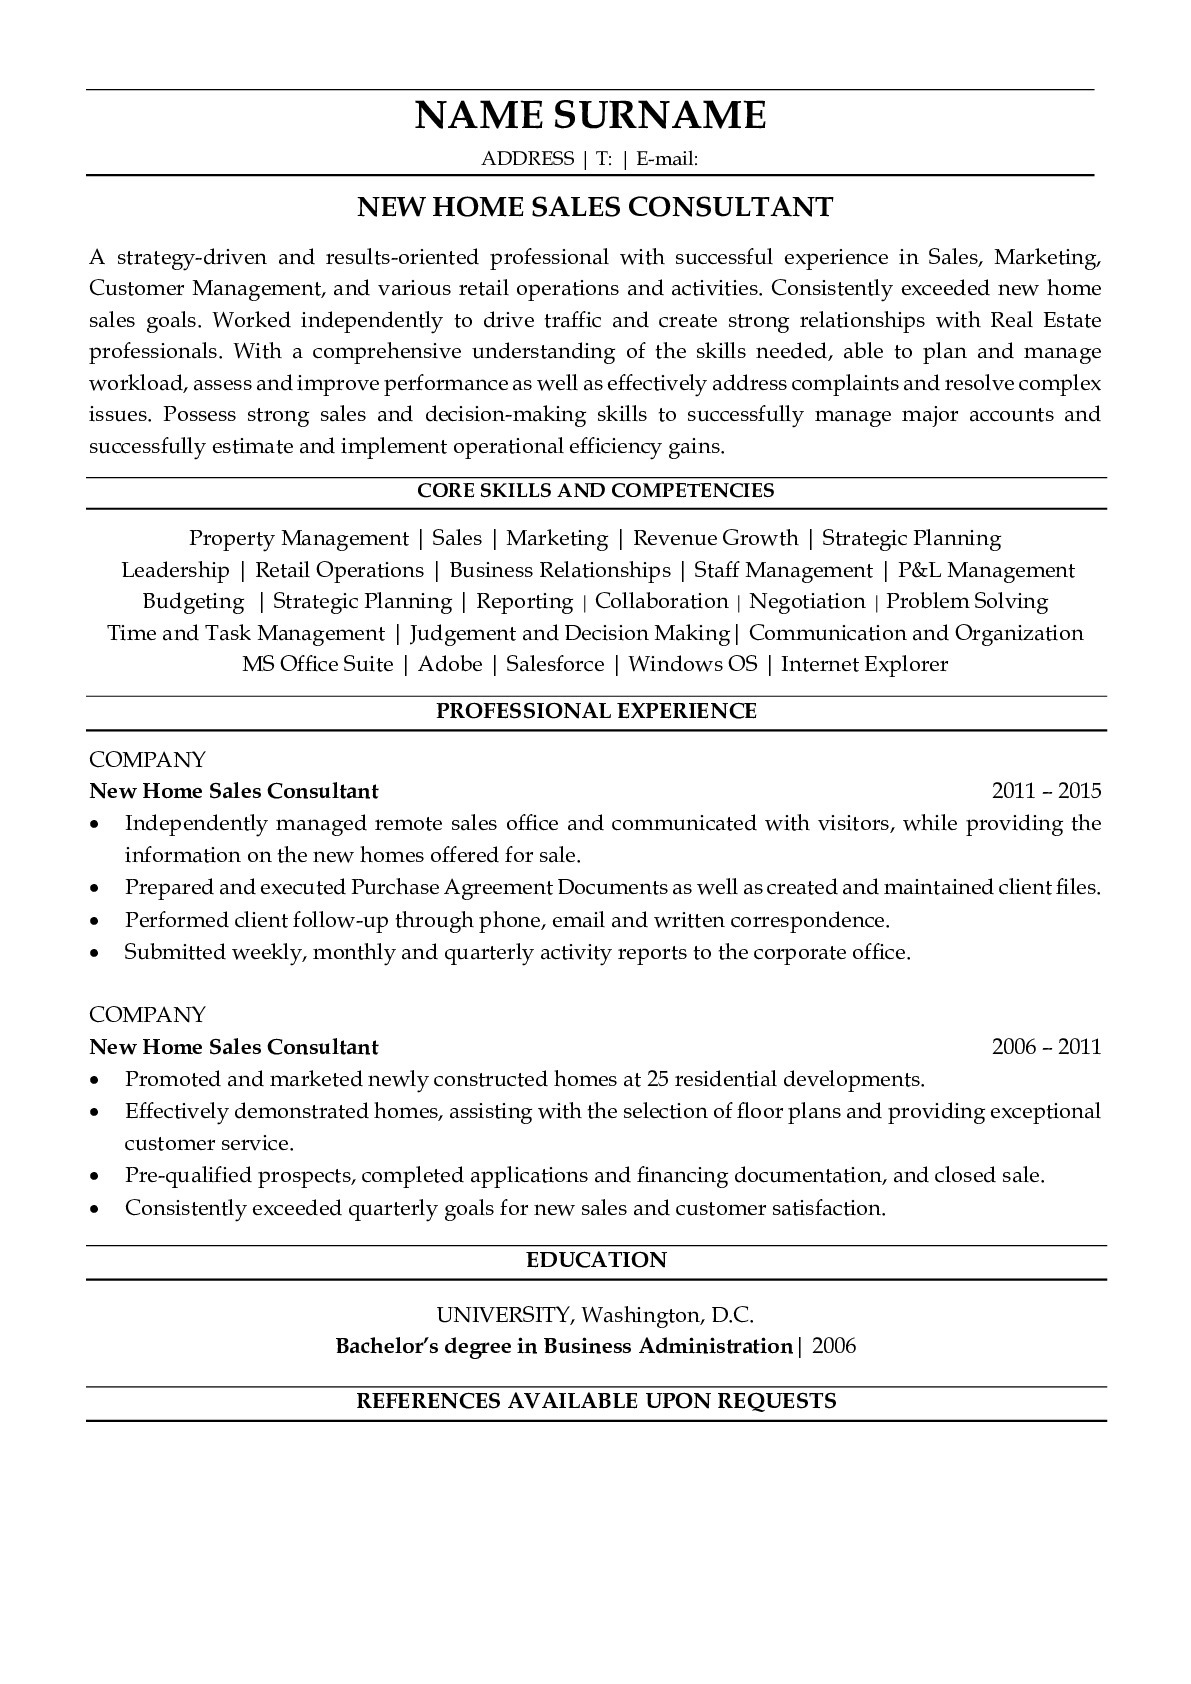 Resume Example for New Home Sales Consultant